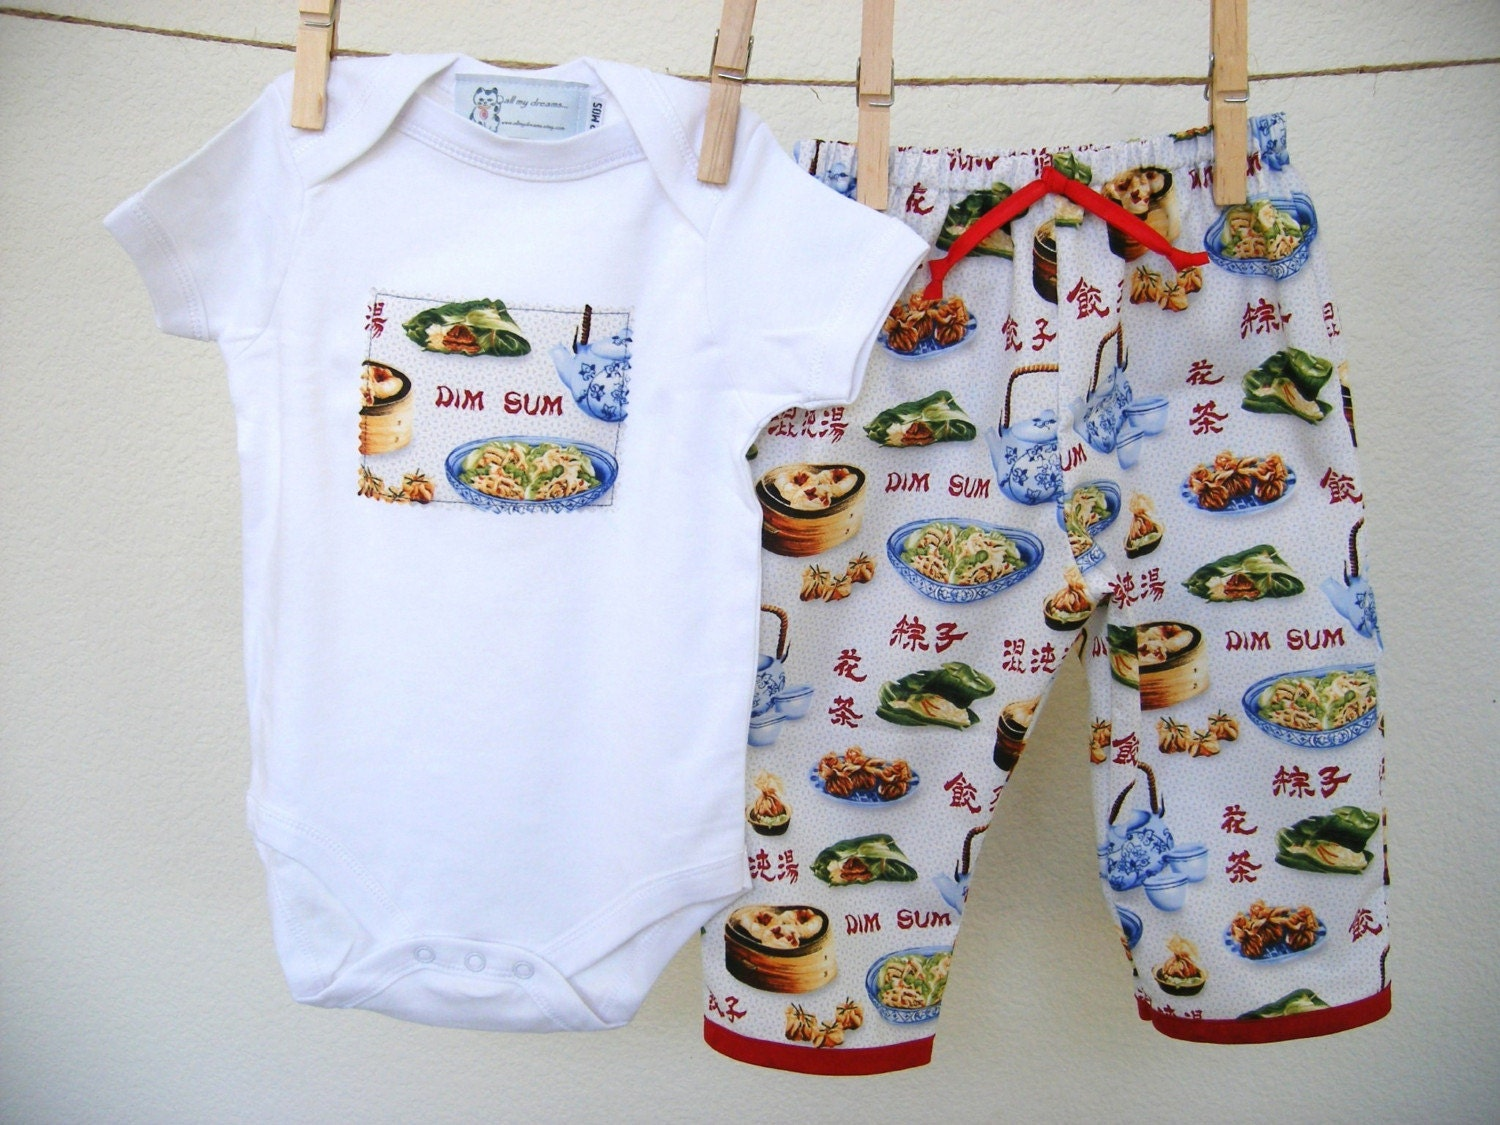 Dim Sum Outfit For Baby